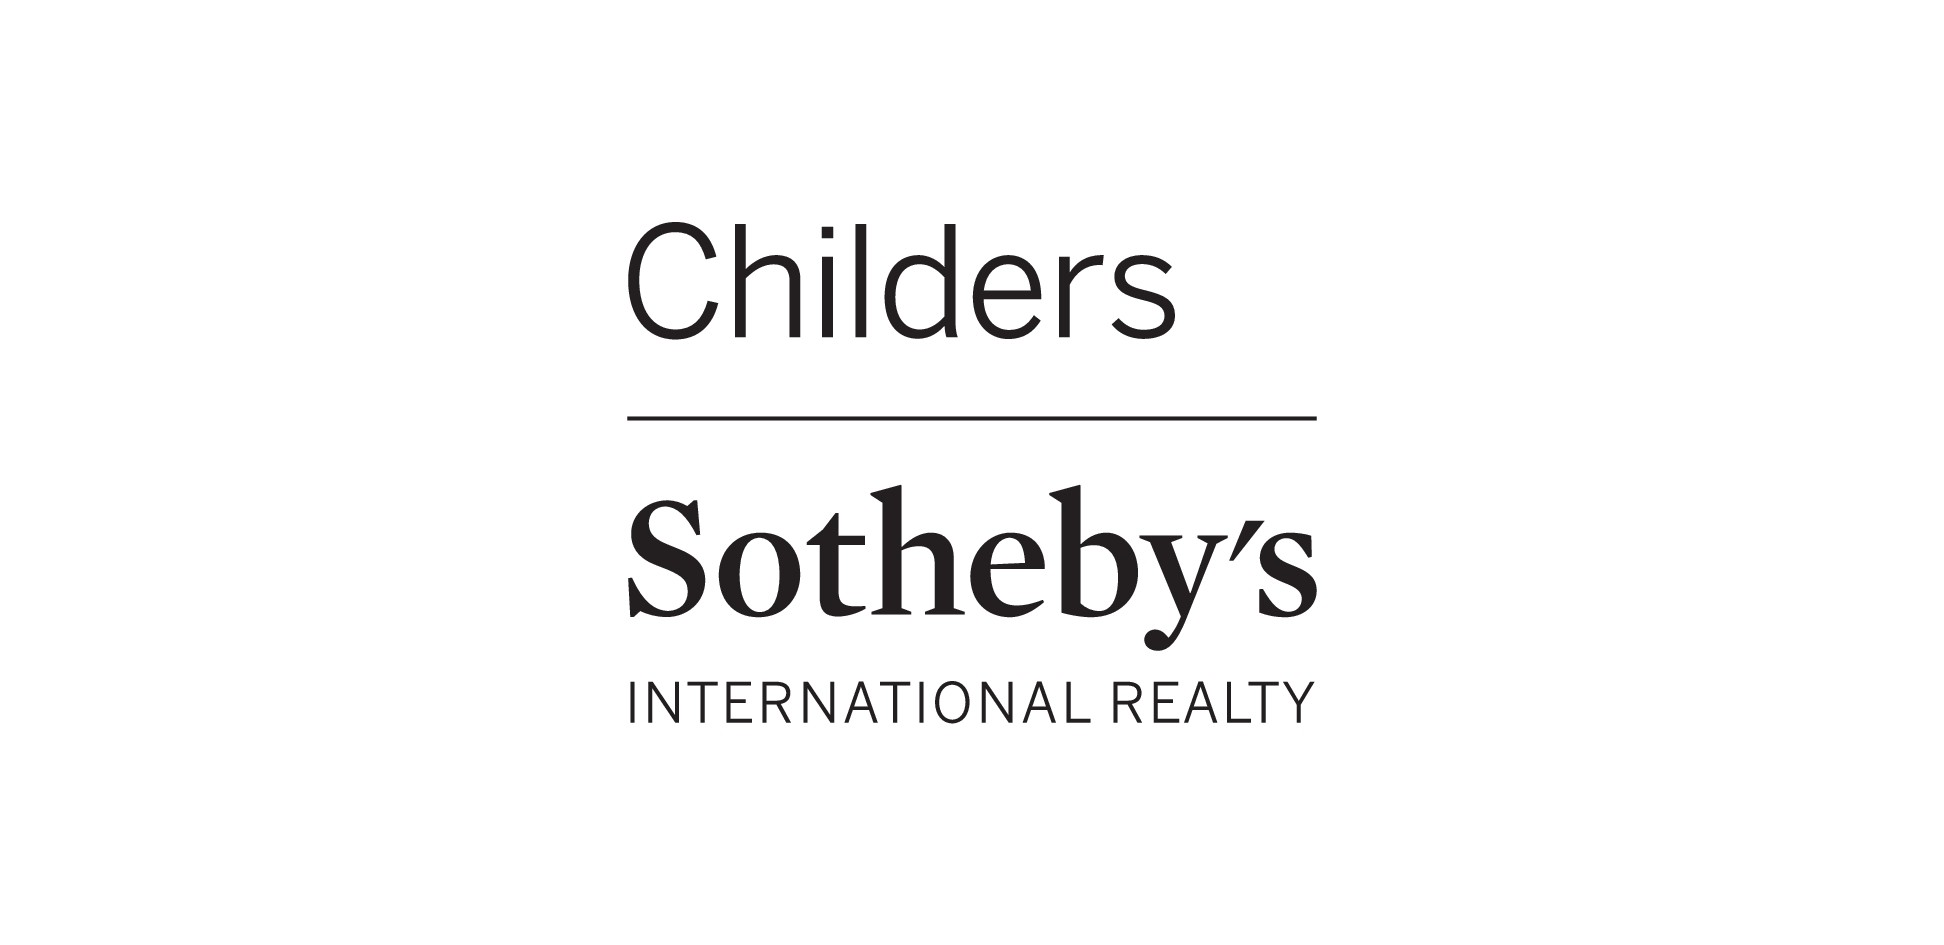 Childers Sothebys Int. Realty